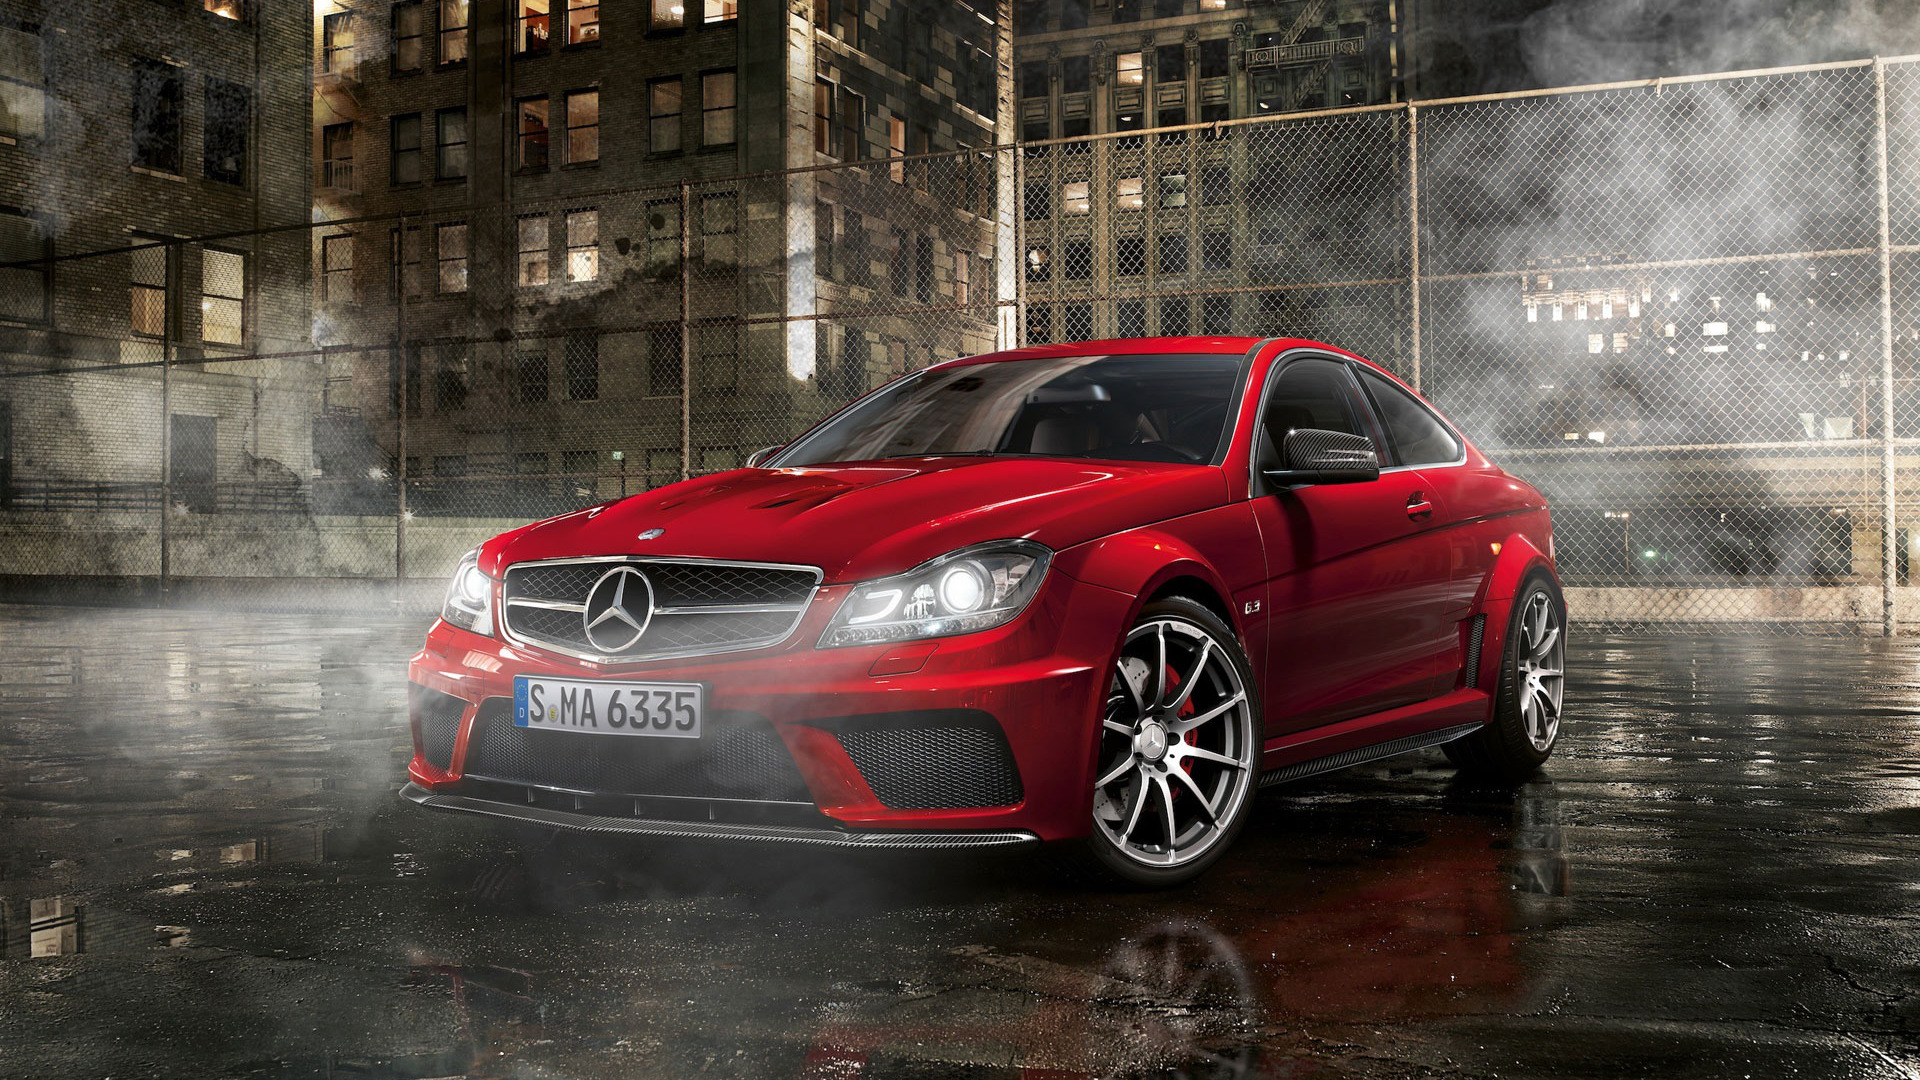 Mercedes Benz Wallpapers for Desktop - WallpaperSafari